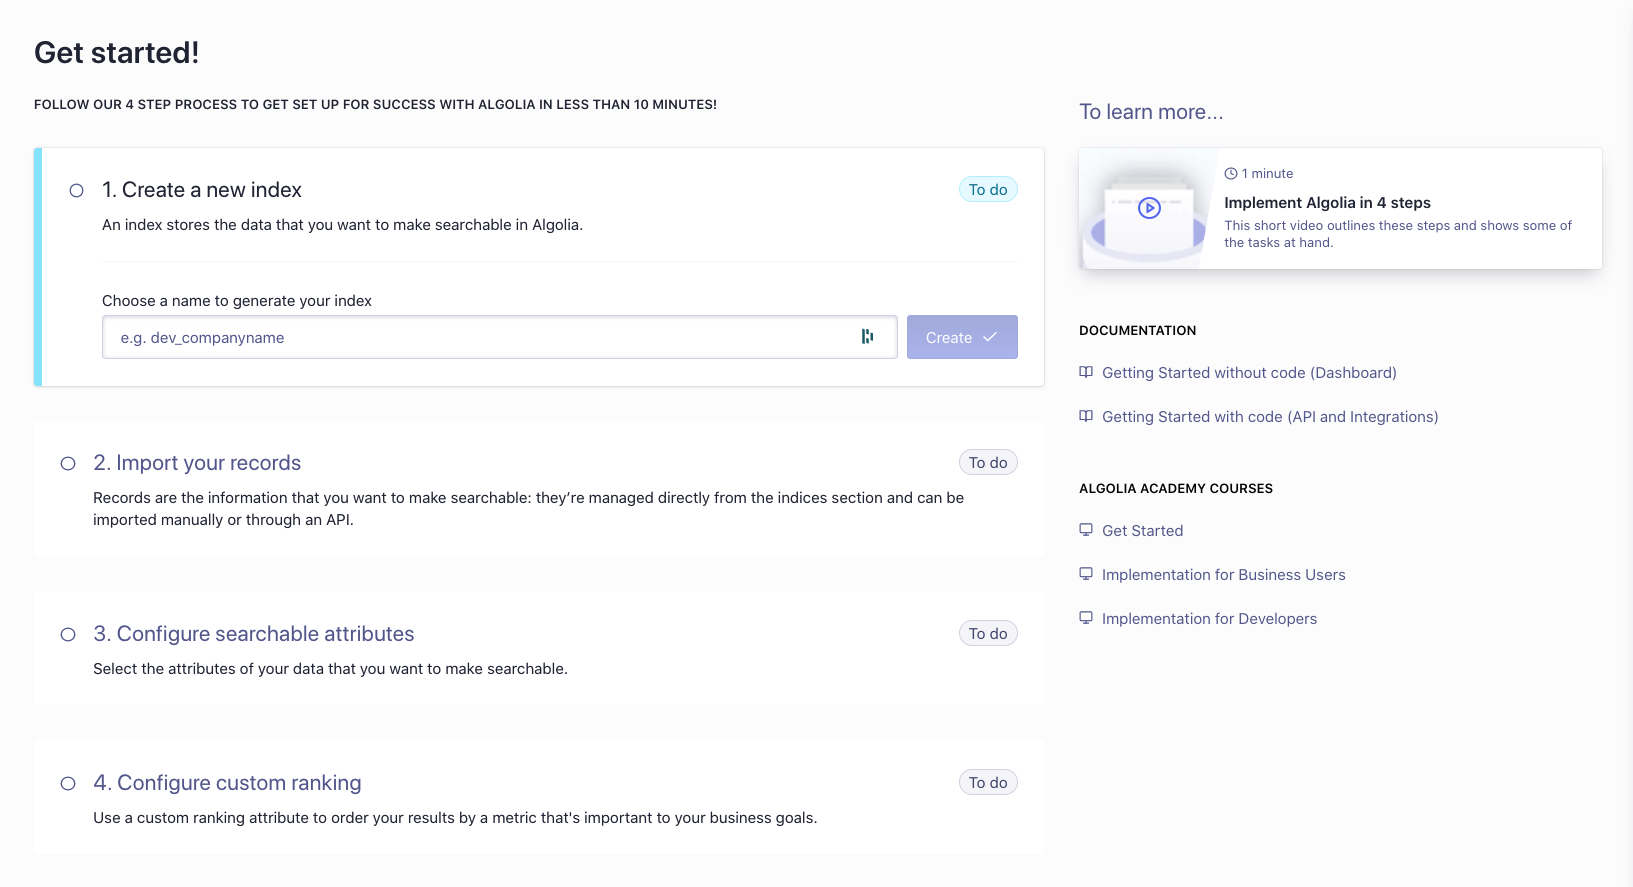 A screenshot of the Get started screen after signing up to Algolia.